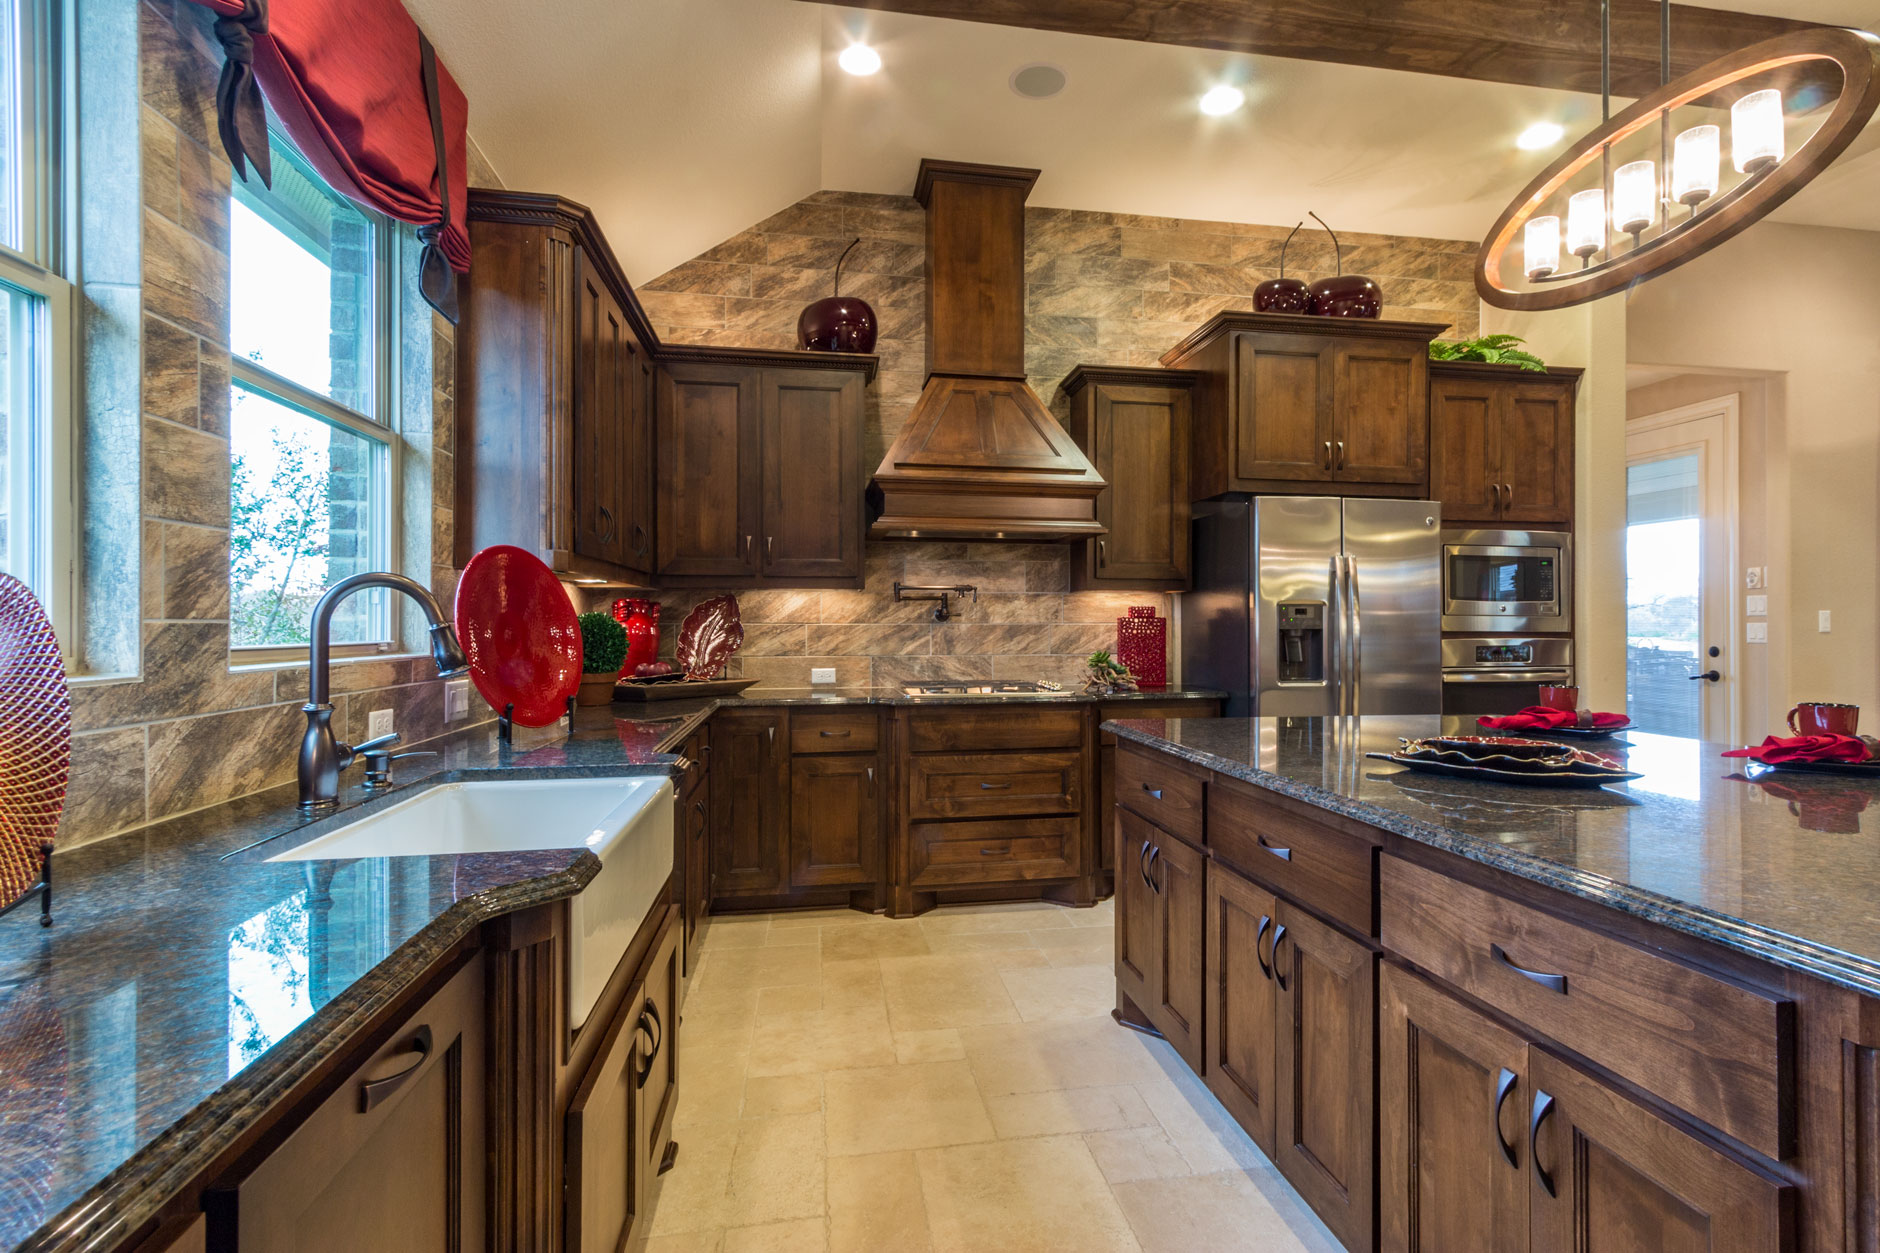 Kitchen 057 - Burrows Cabinets - central Texas builder ...